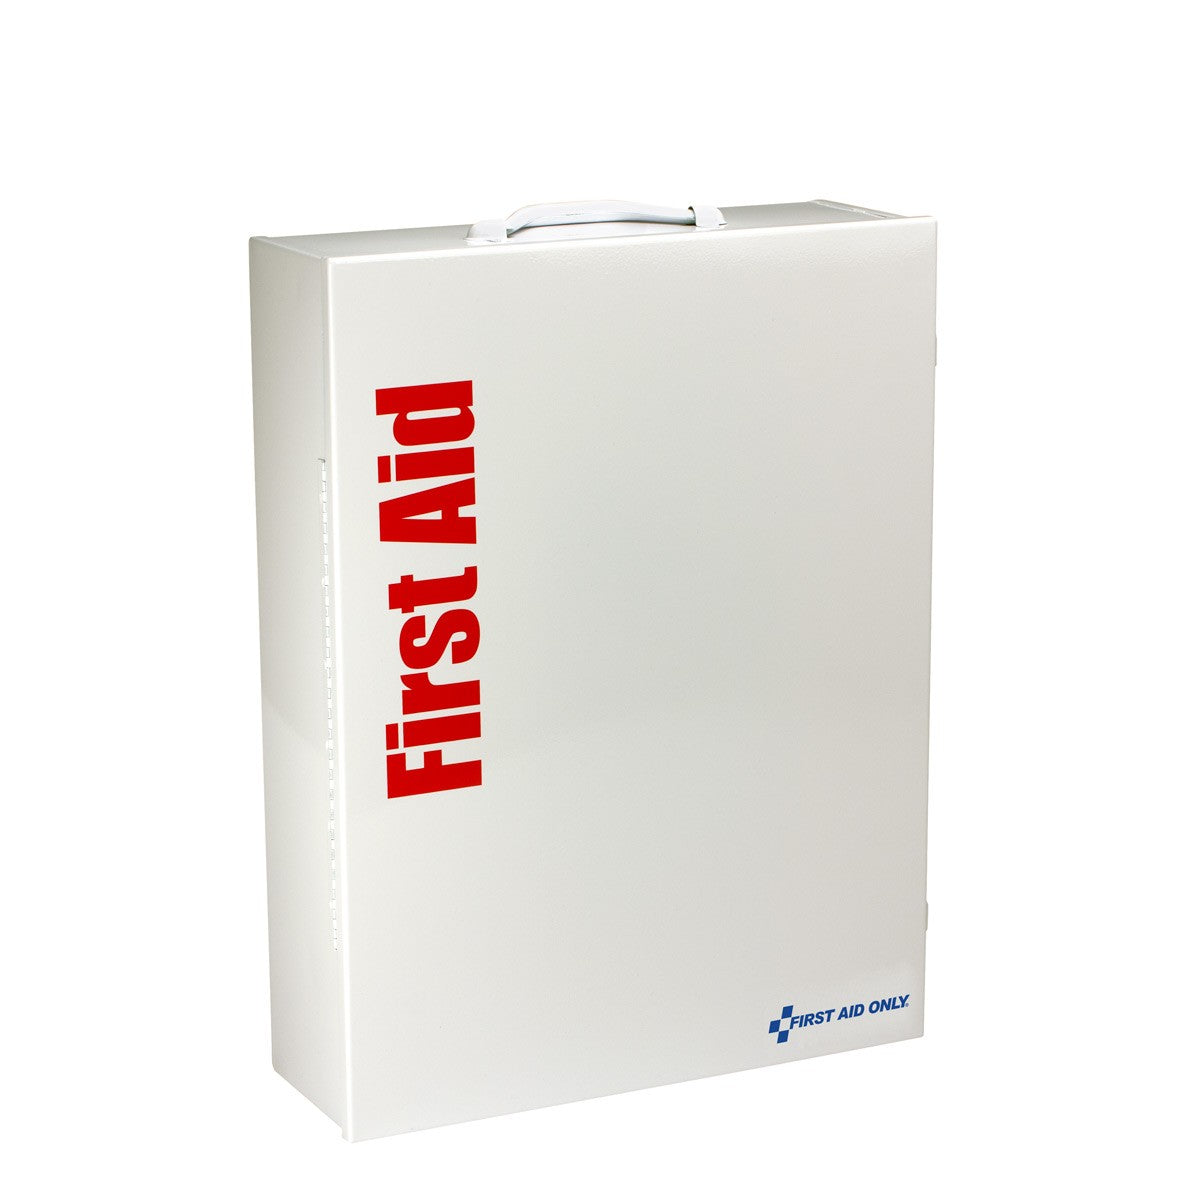 First Aid Only 150 Person XL Metal Smart Compliance First Aid Cabinet with Medication